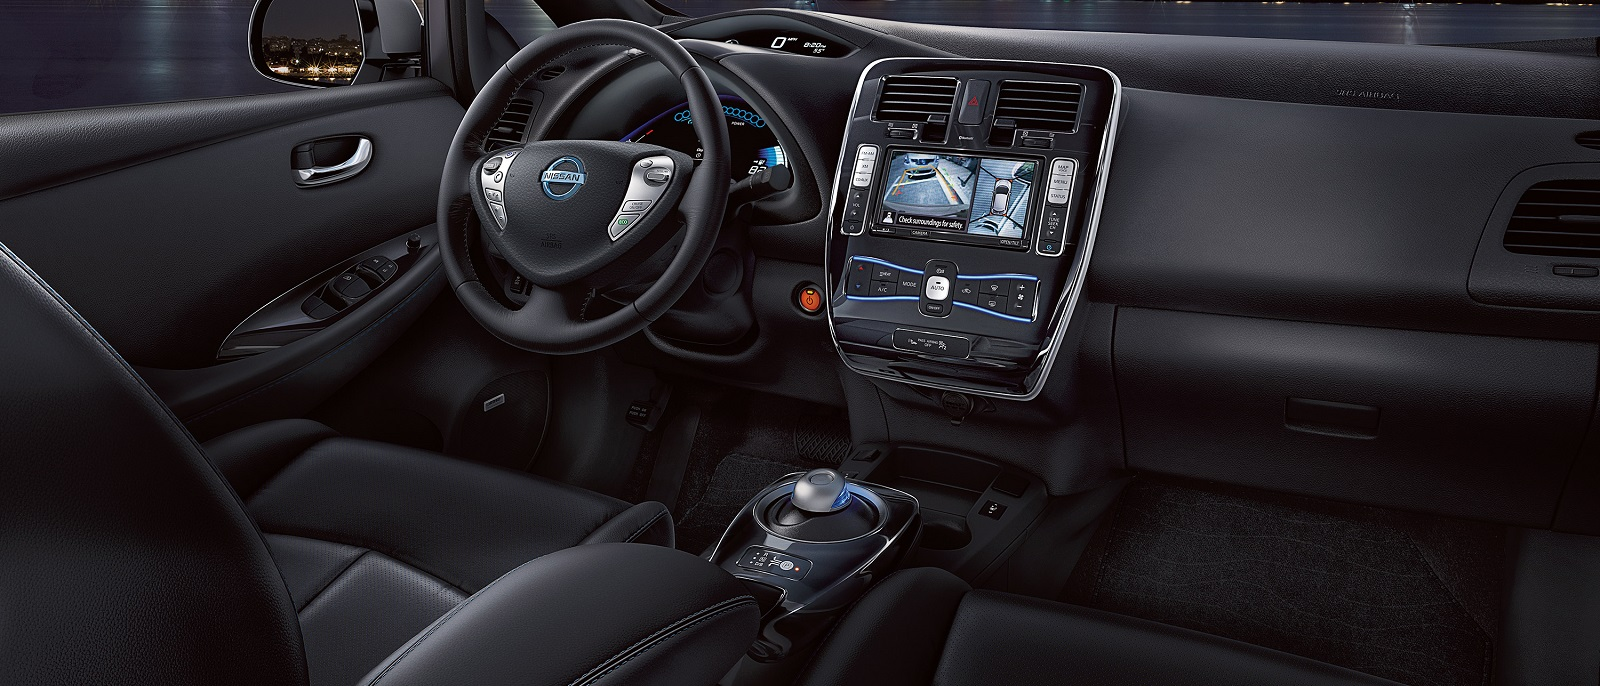 2016-nissan-leaf-interior-black-leather